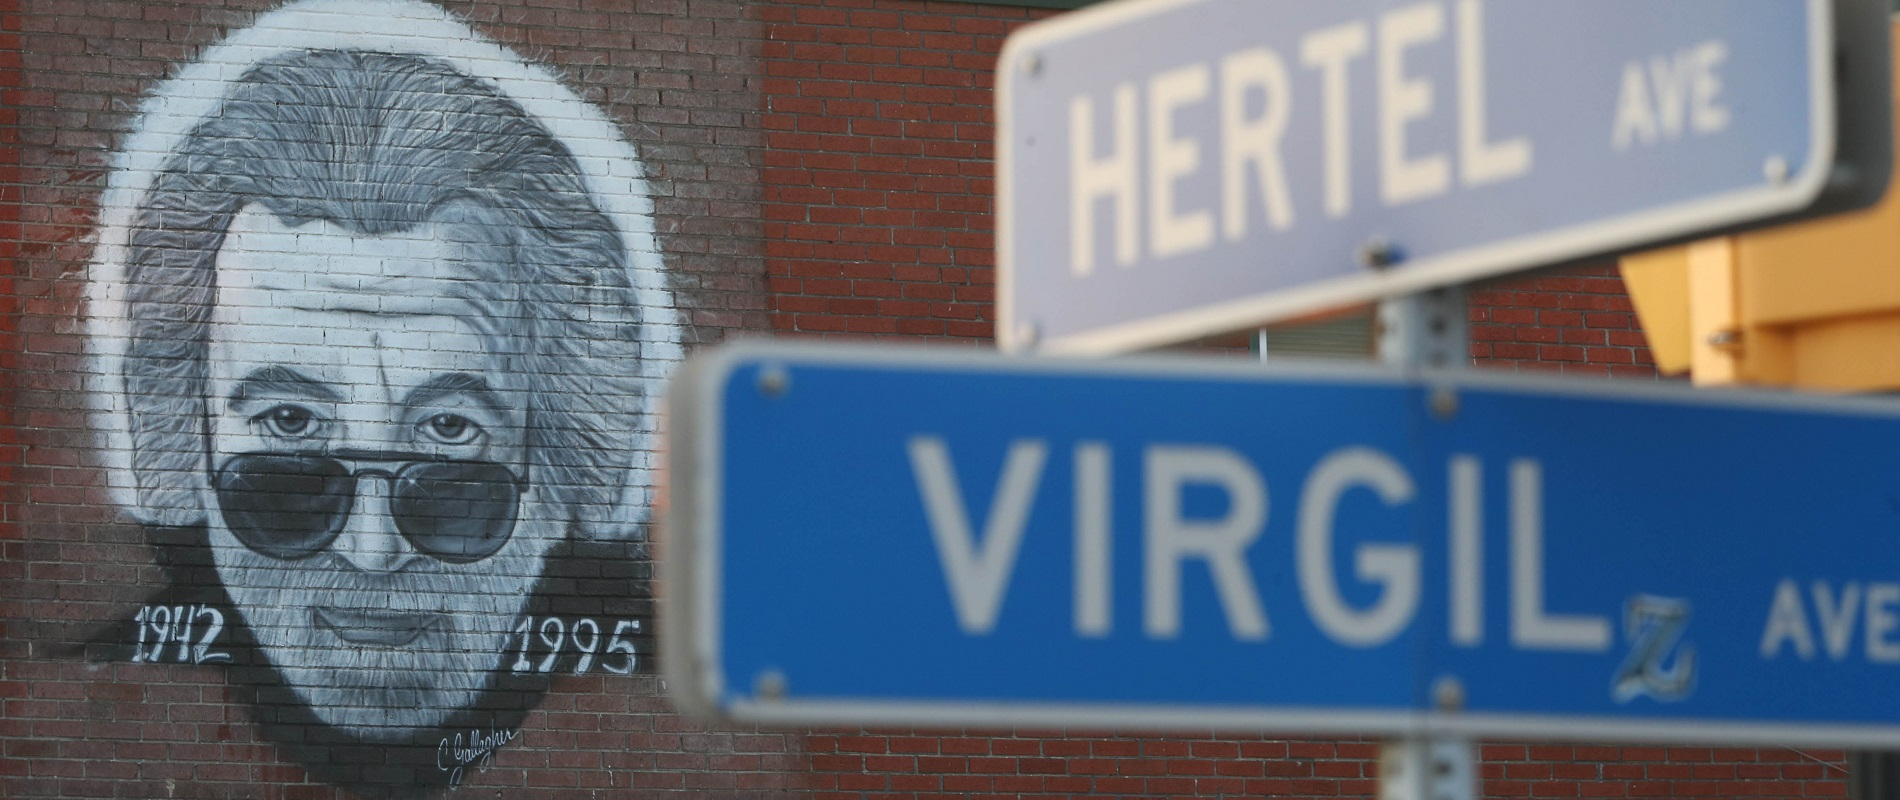 The Jerry Garcia mural at Terrapin Station is a Hertel Avenue landmark. (Sharon Cantillon/Buffalo News)